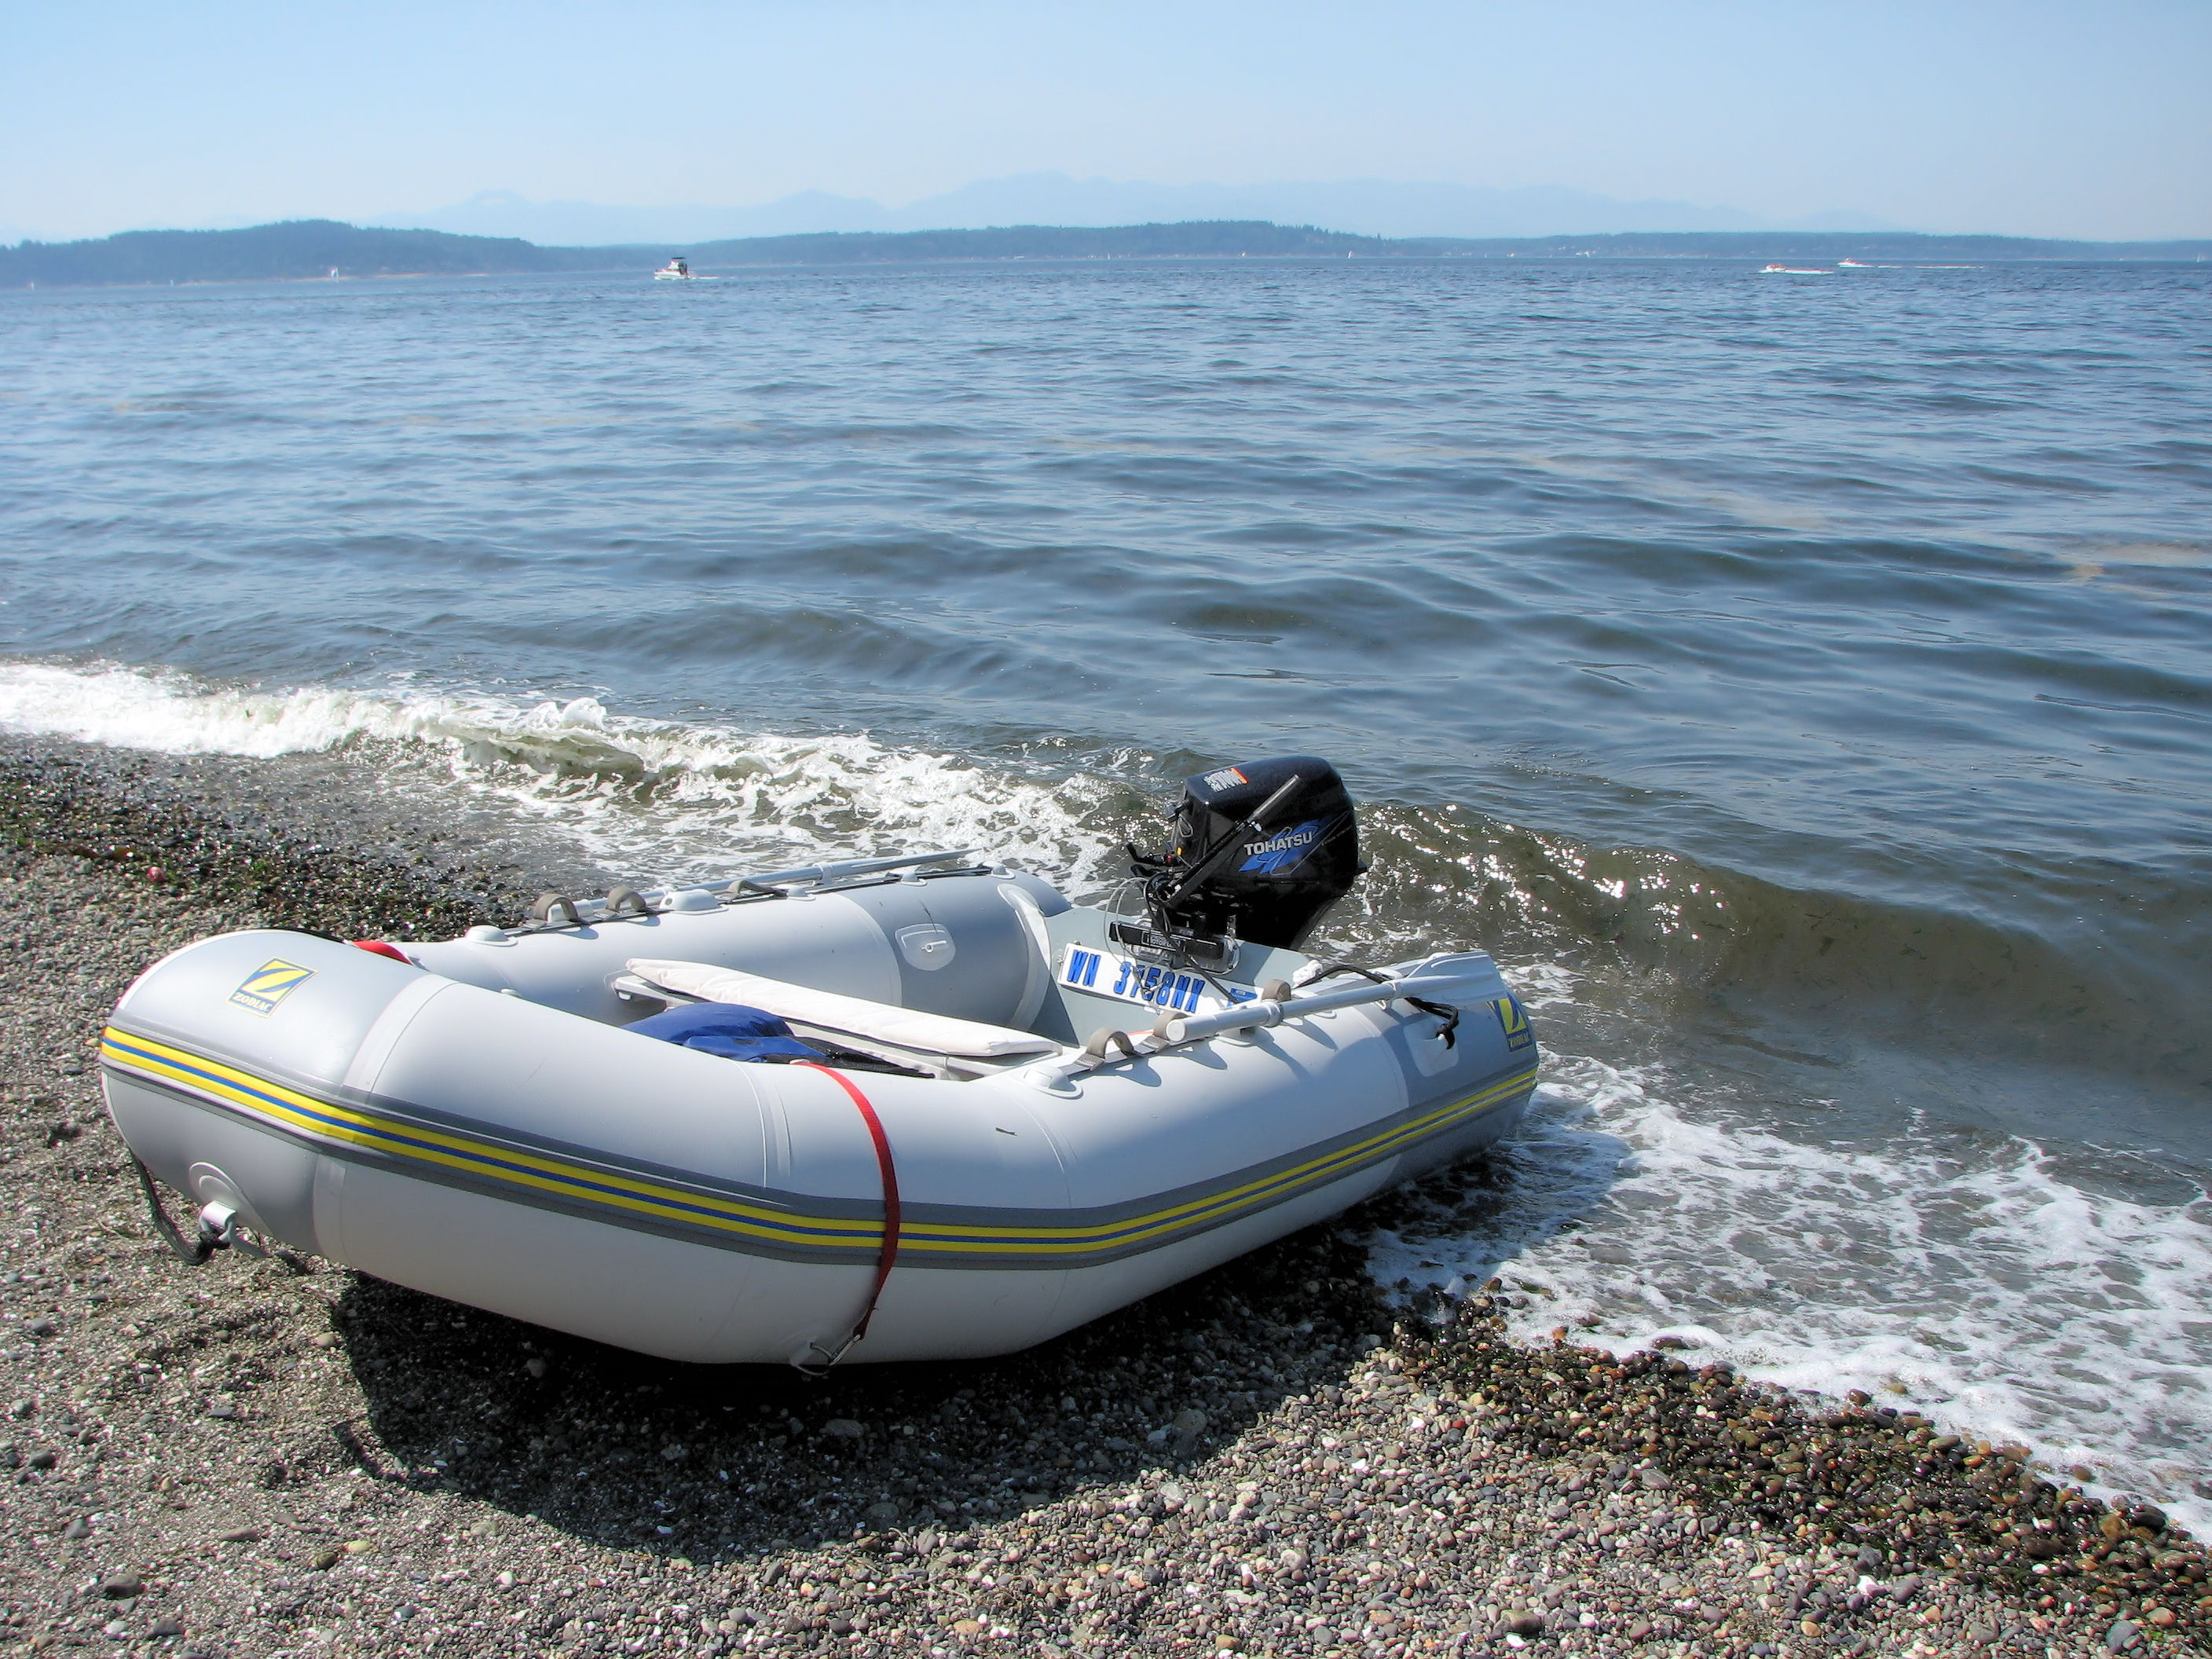 An inflatable boat, like a Zodiac